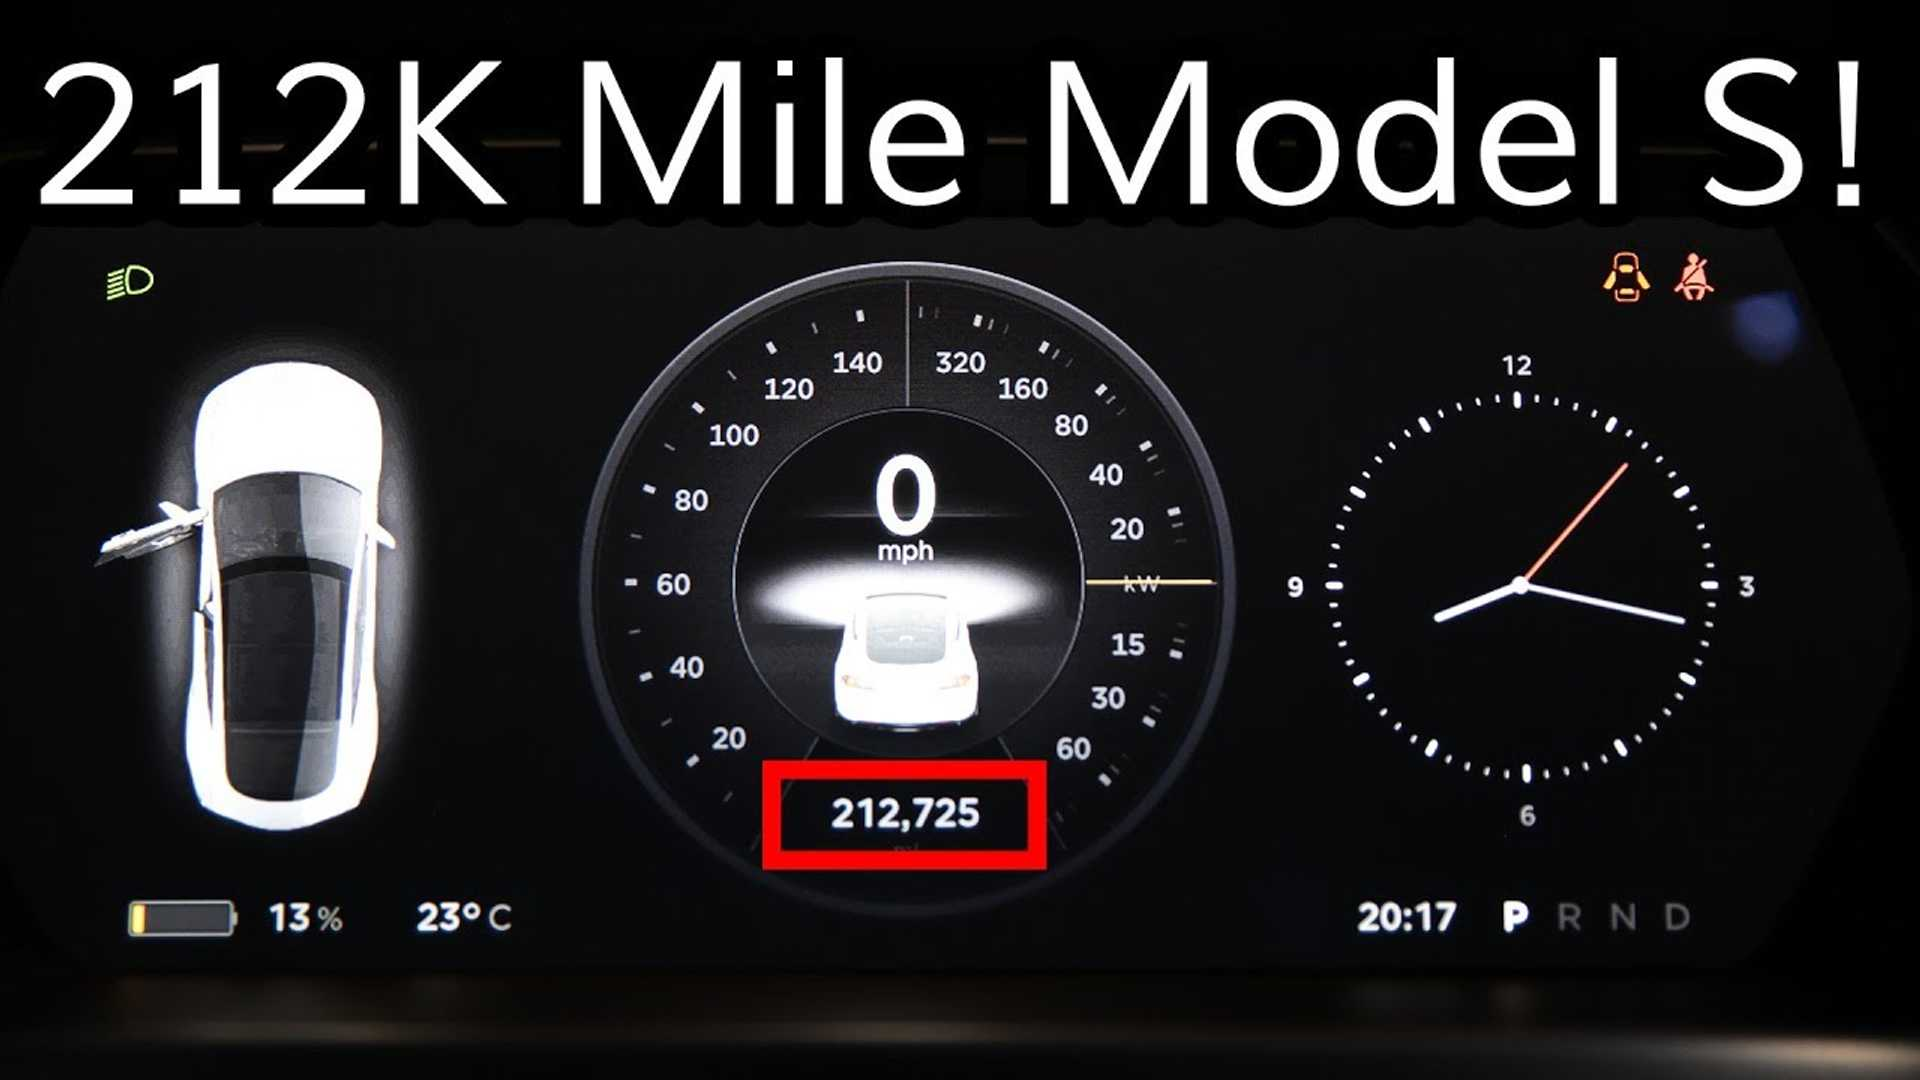 Tesla Model S Owner's Account Of 213,000 Miles To Date